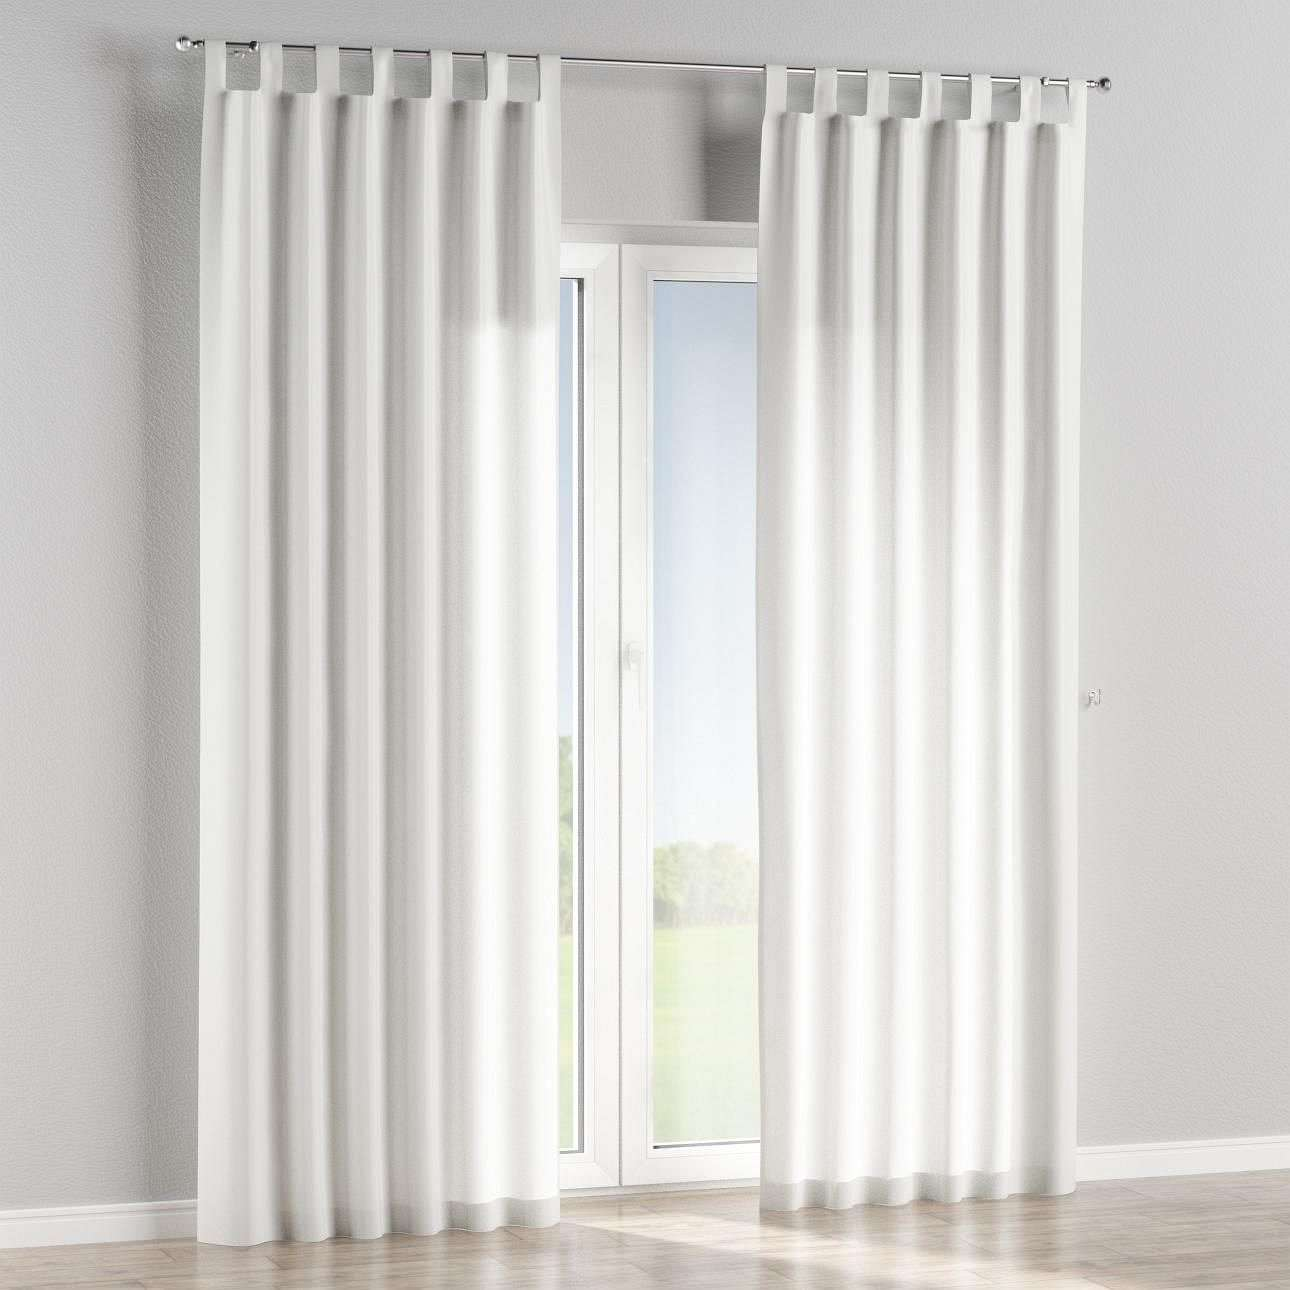 Tab top lined curtains in collection Flowers, fabric: 311-09